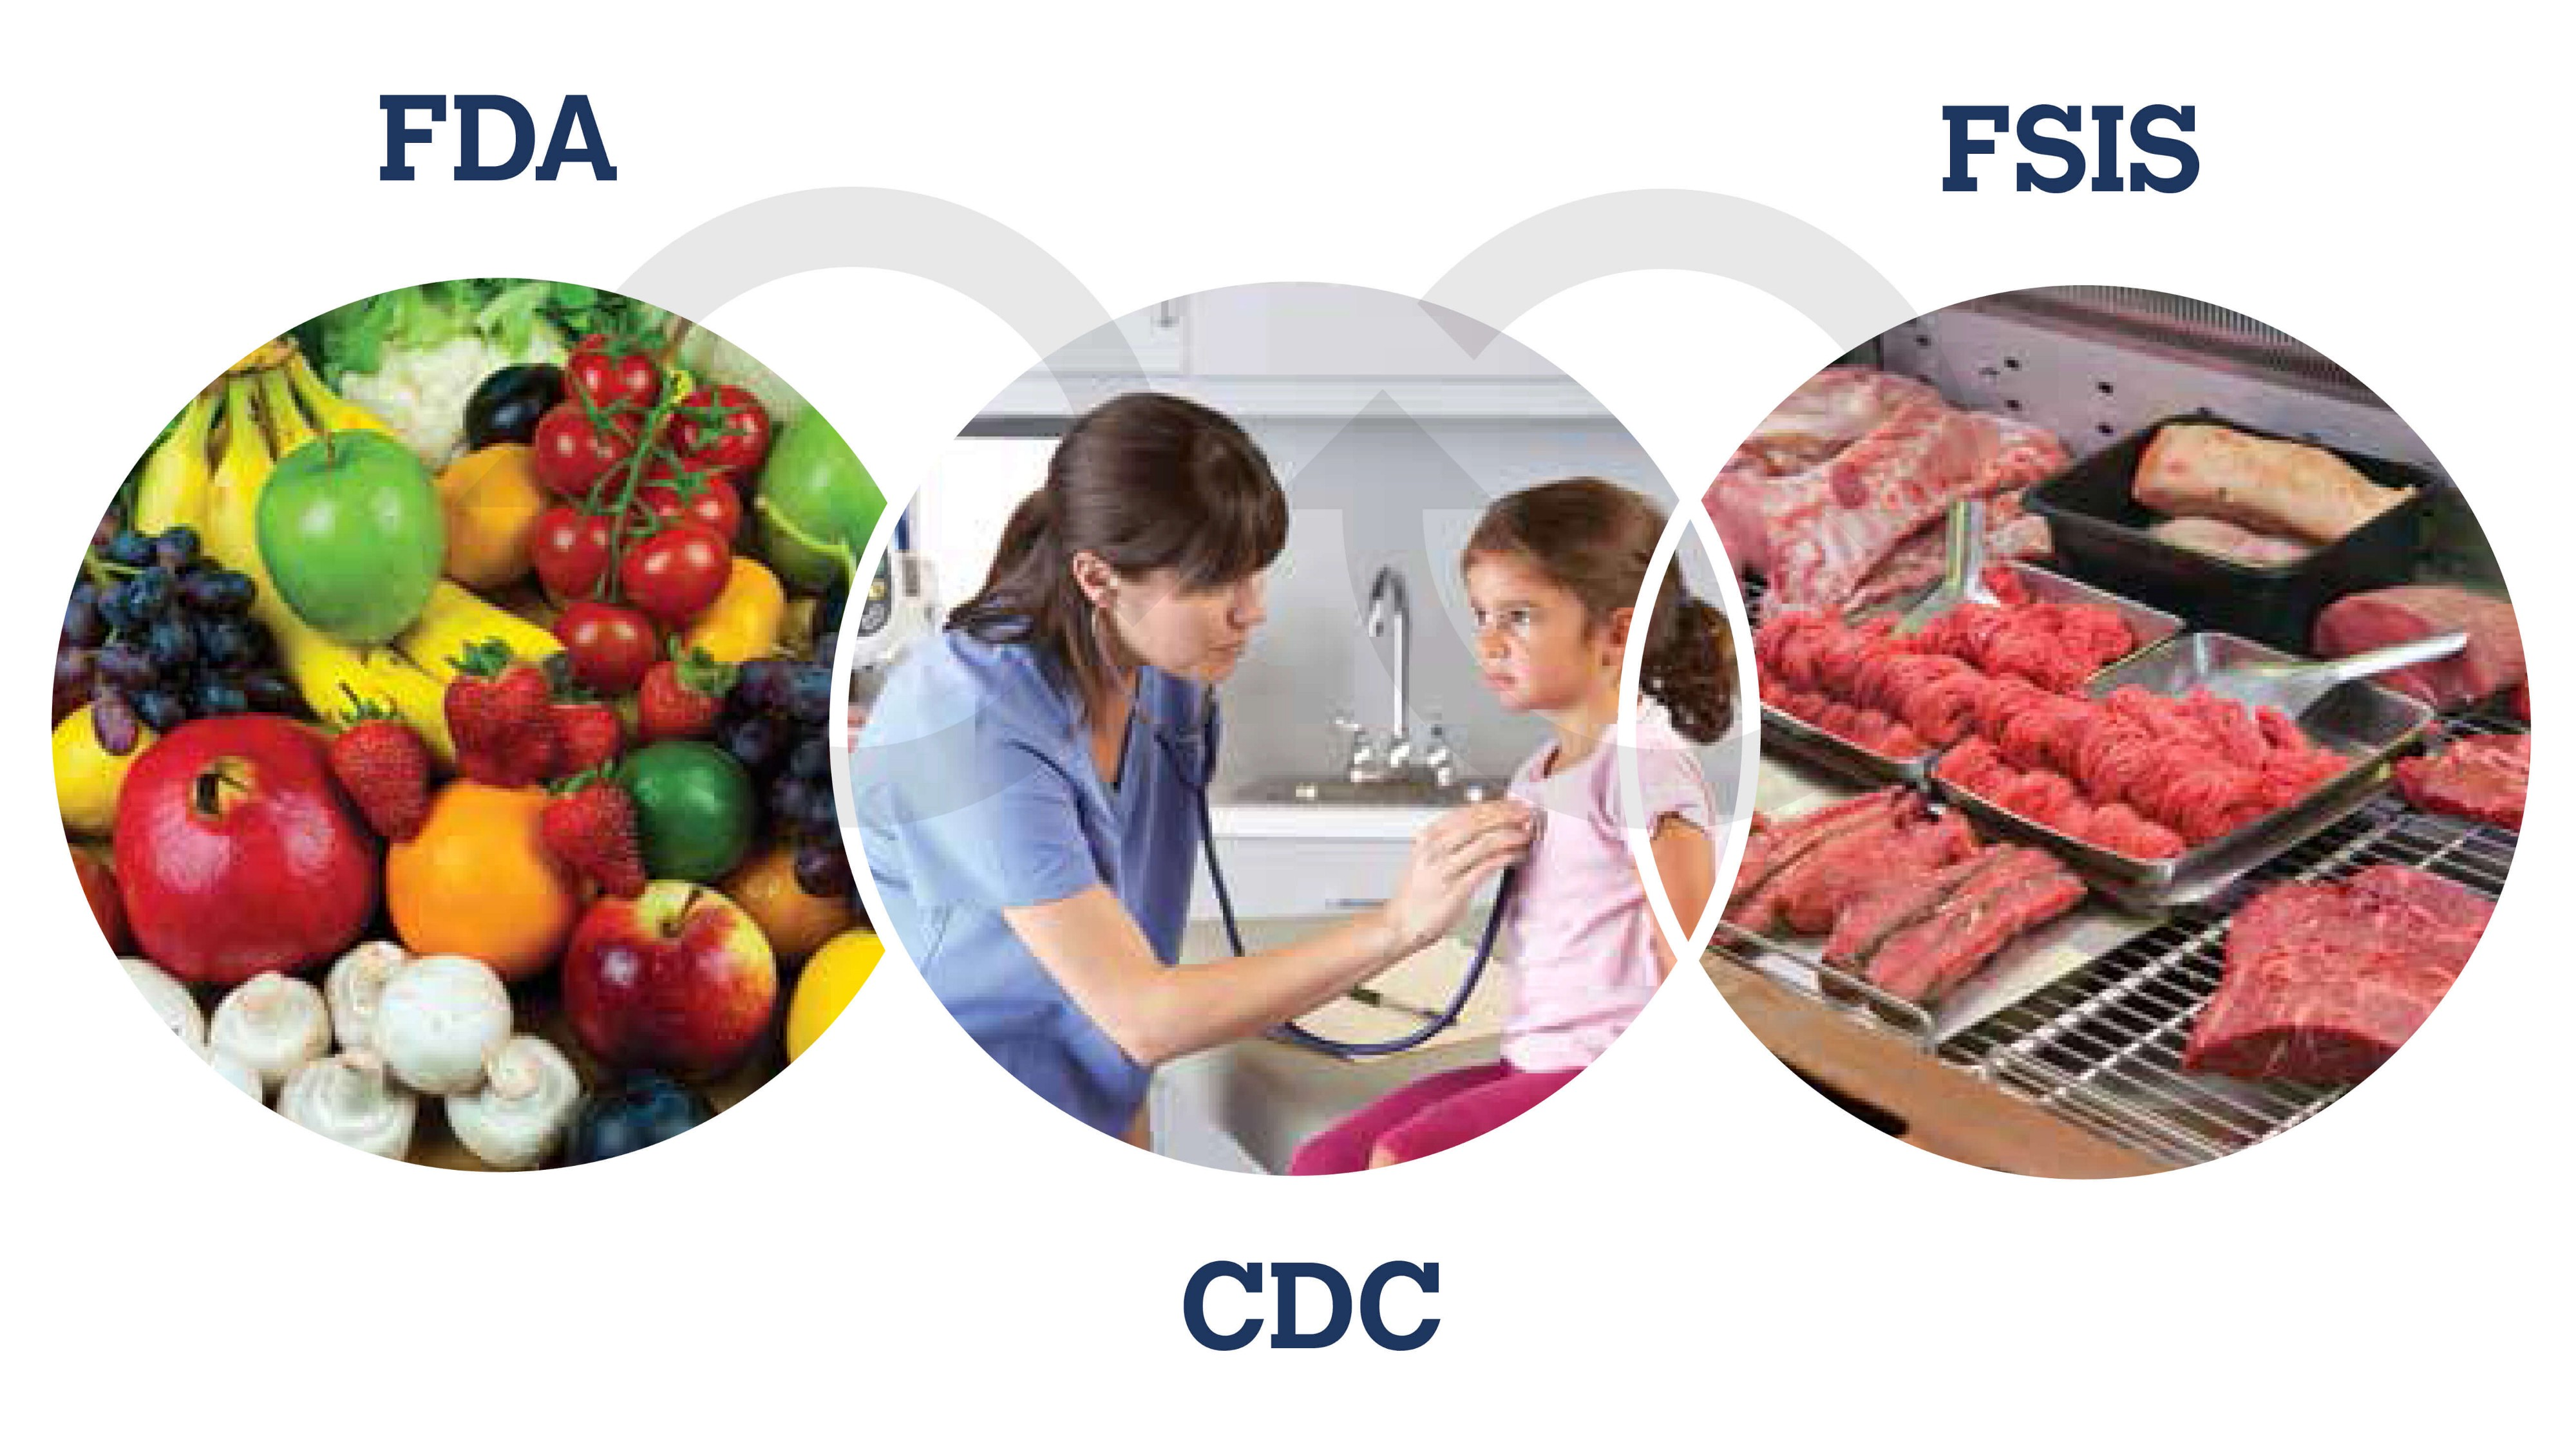 Safer Food and Greater Consumer Confidence - USDA Results